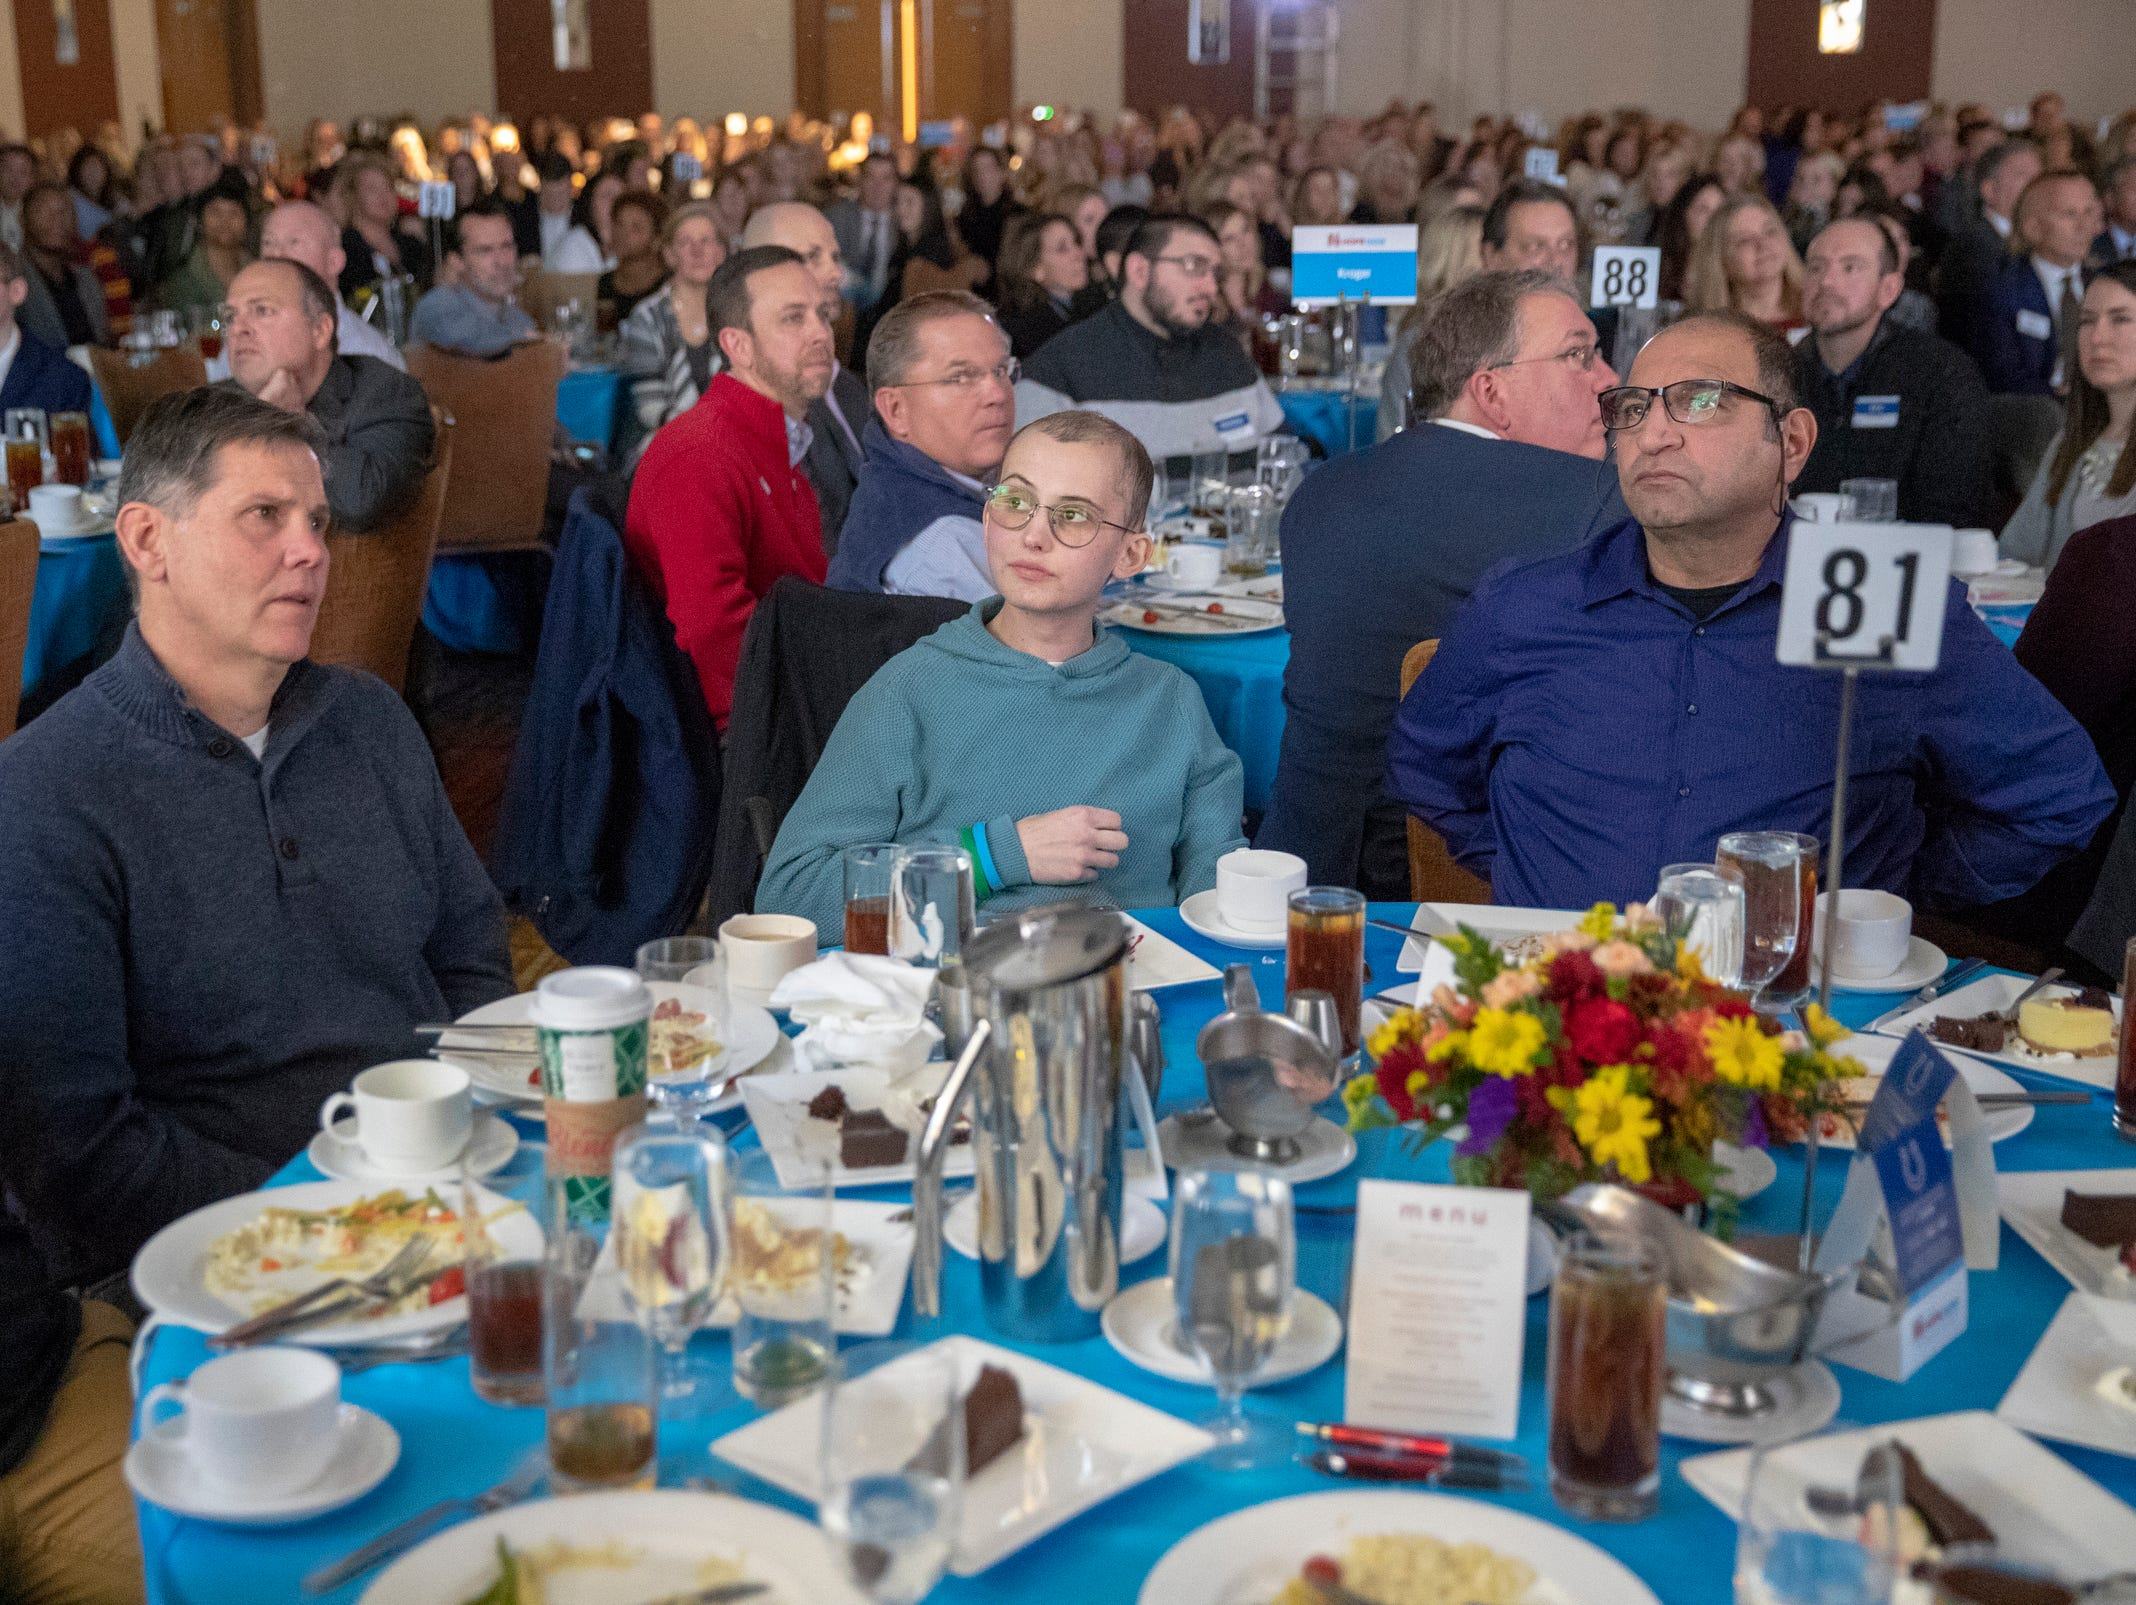 Tyler Trent (middle), at a fundraiser luncheon for Riley Children's Foundation's Be The Hope Now campaign, Indianapolis, Wednesday, Nov. 28, 2018. Trent, who has the rare bone cancer osteosarcoma, is in hospice care, and was given the Sagamore of the Wabash award, given to distinguished Hoosiers.